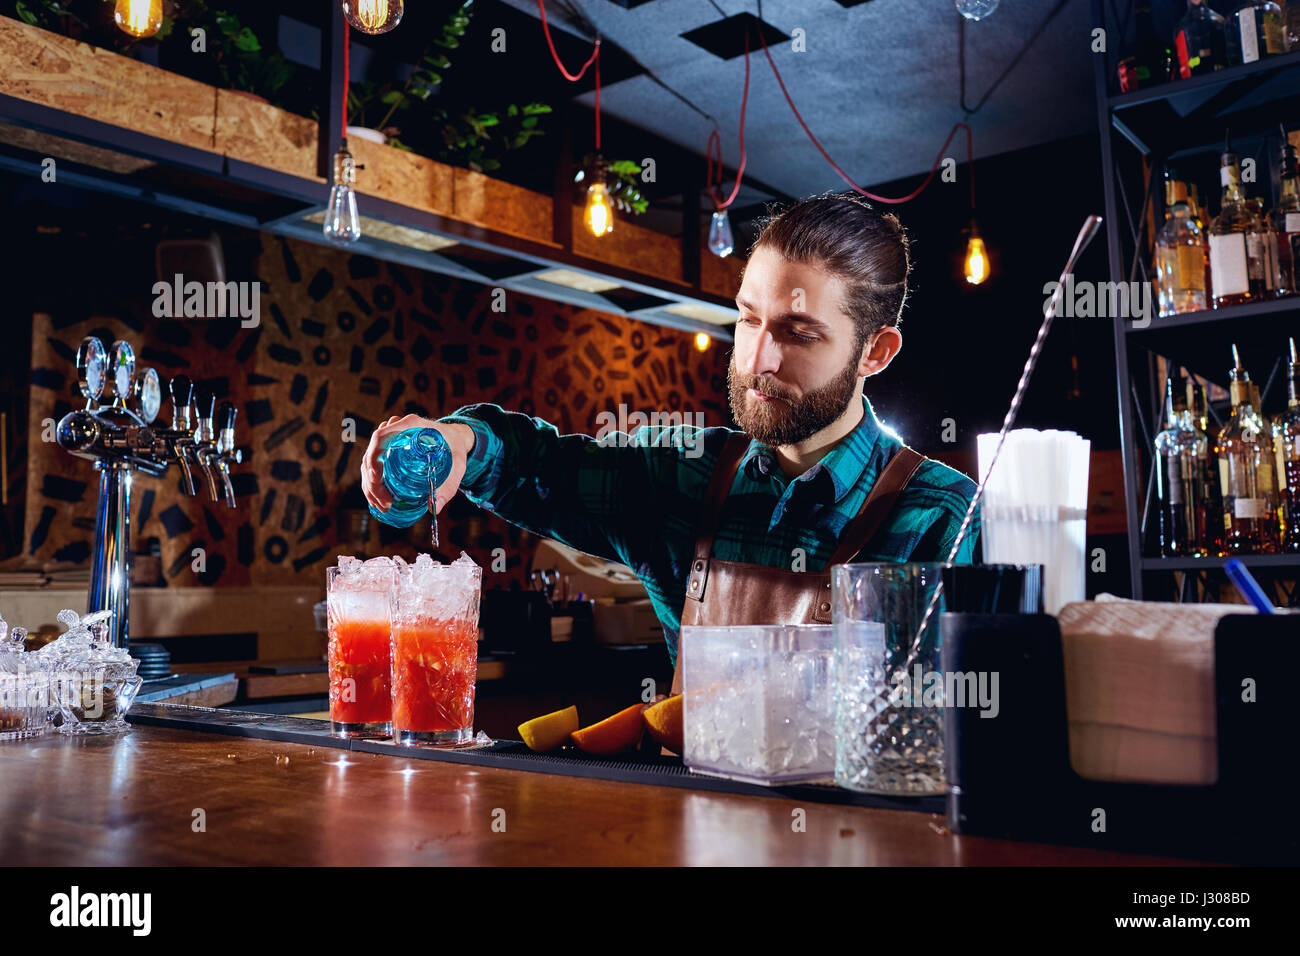 The barman with a beard makes  cocktail at  bar - Stock Image